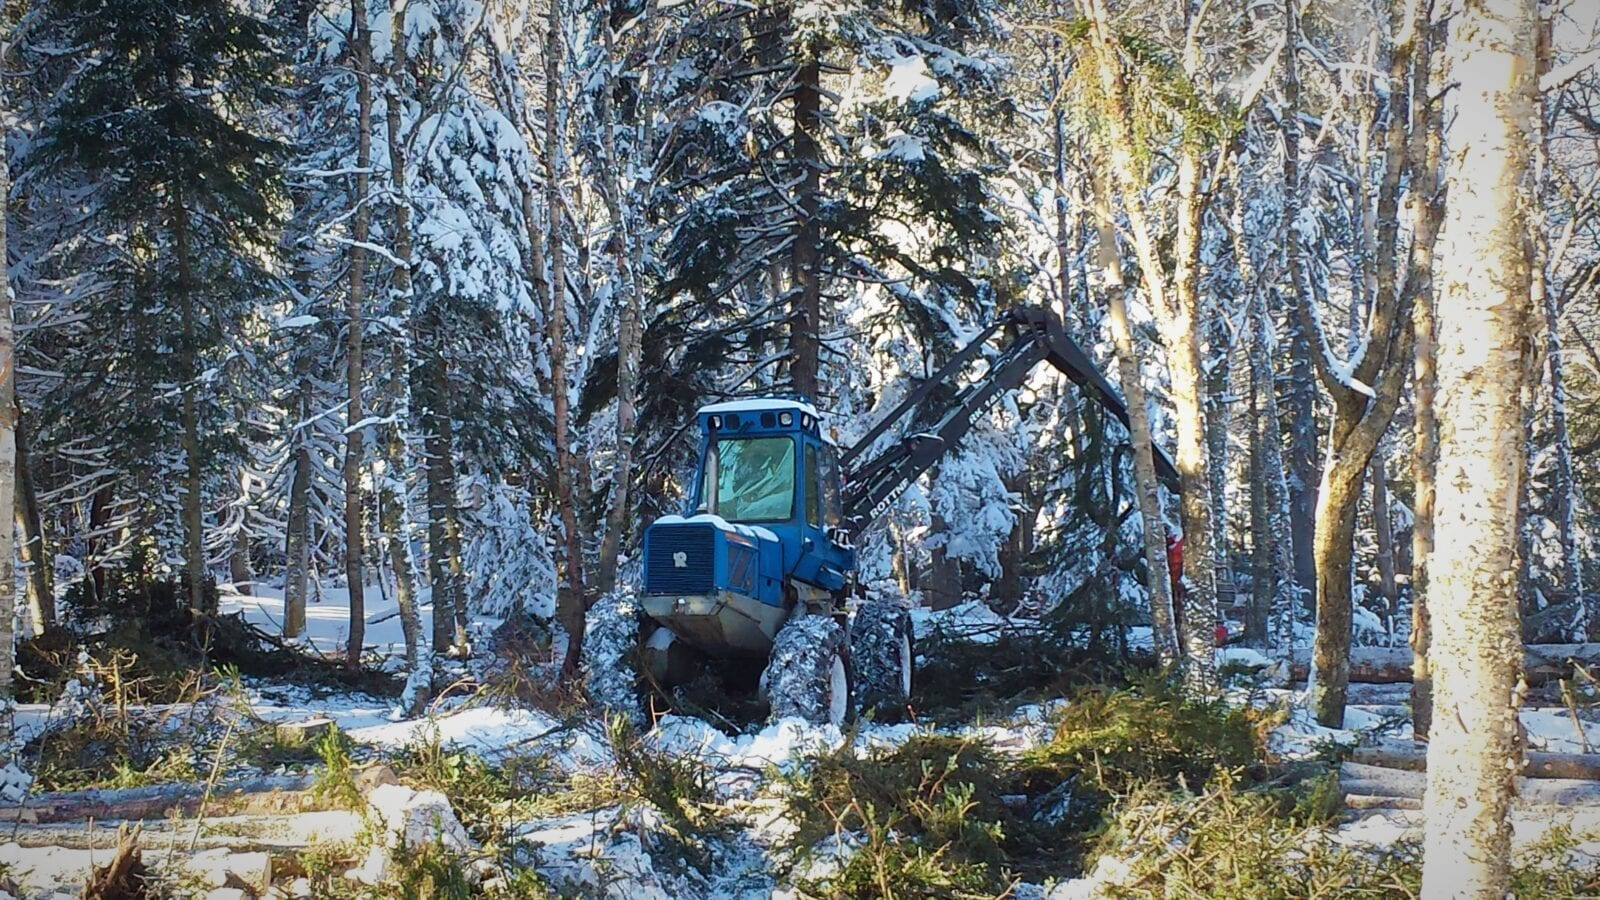 photo of tree clearing heavy equipment in forest in winter